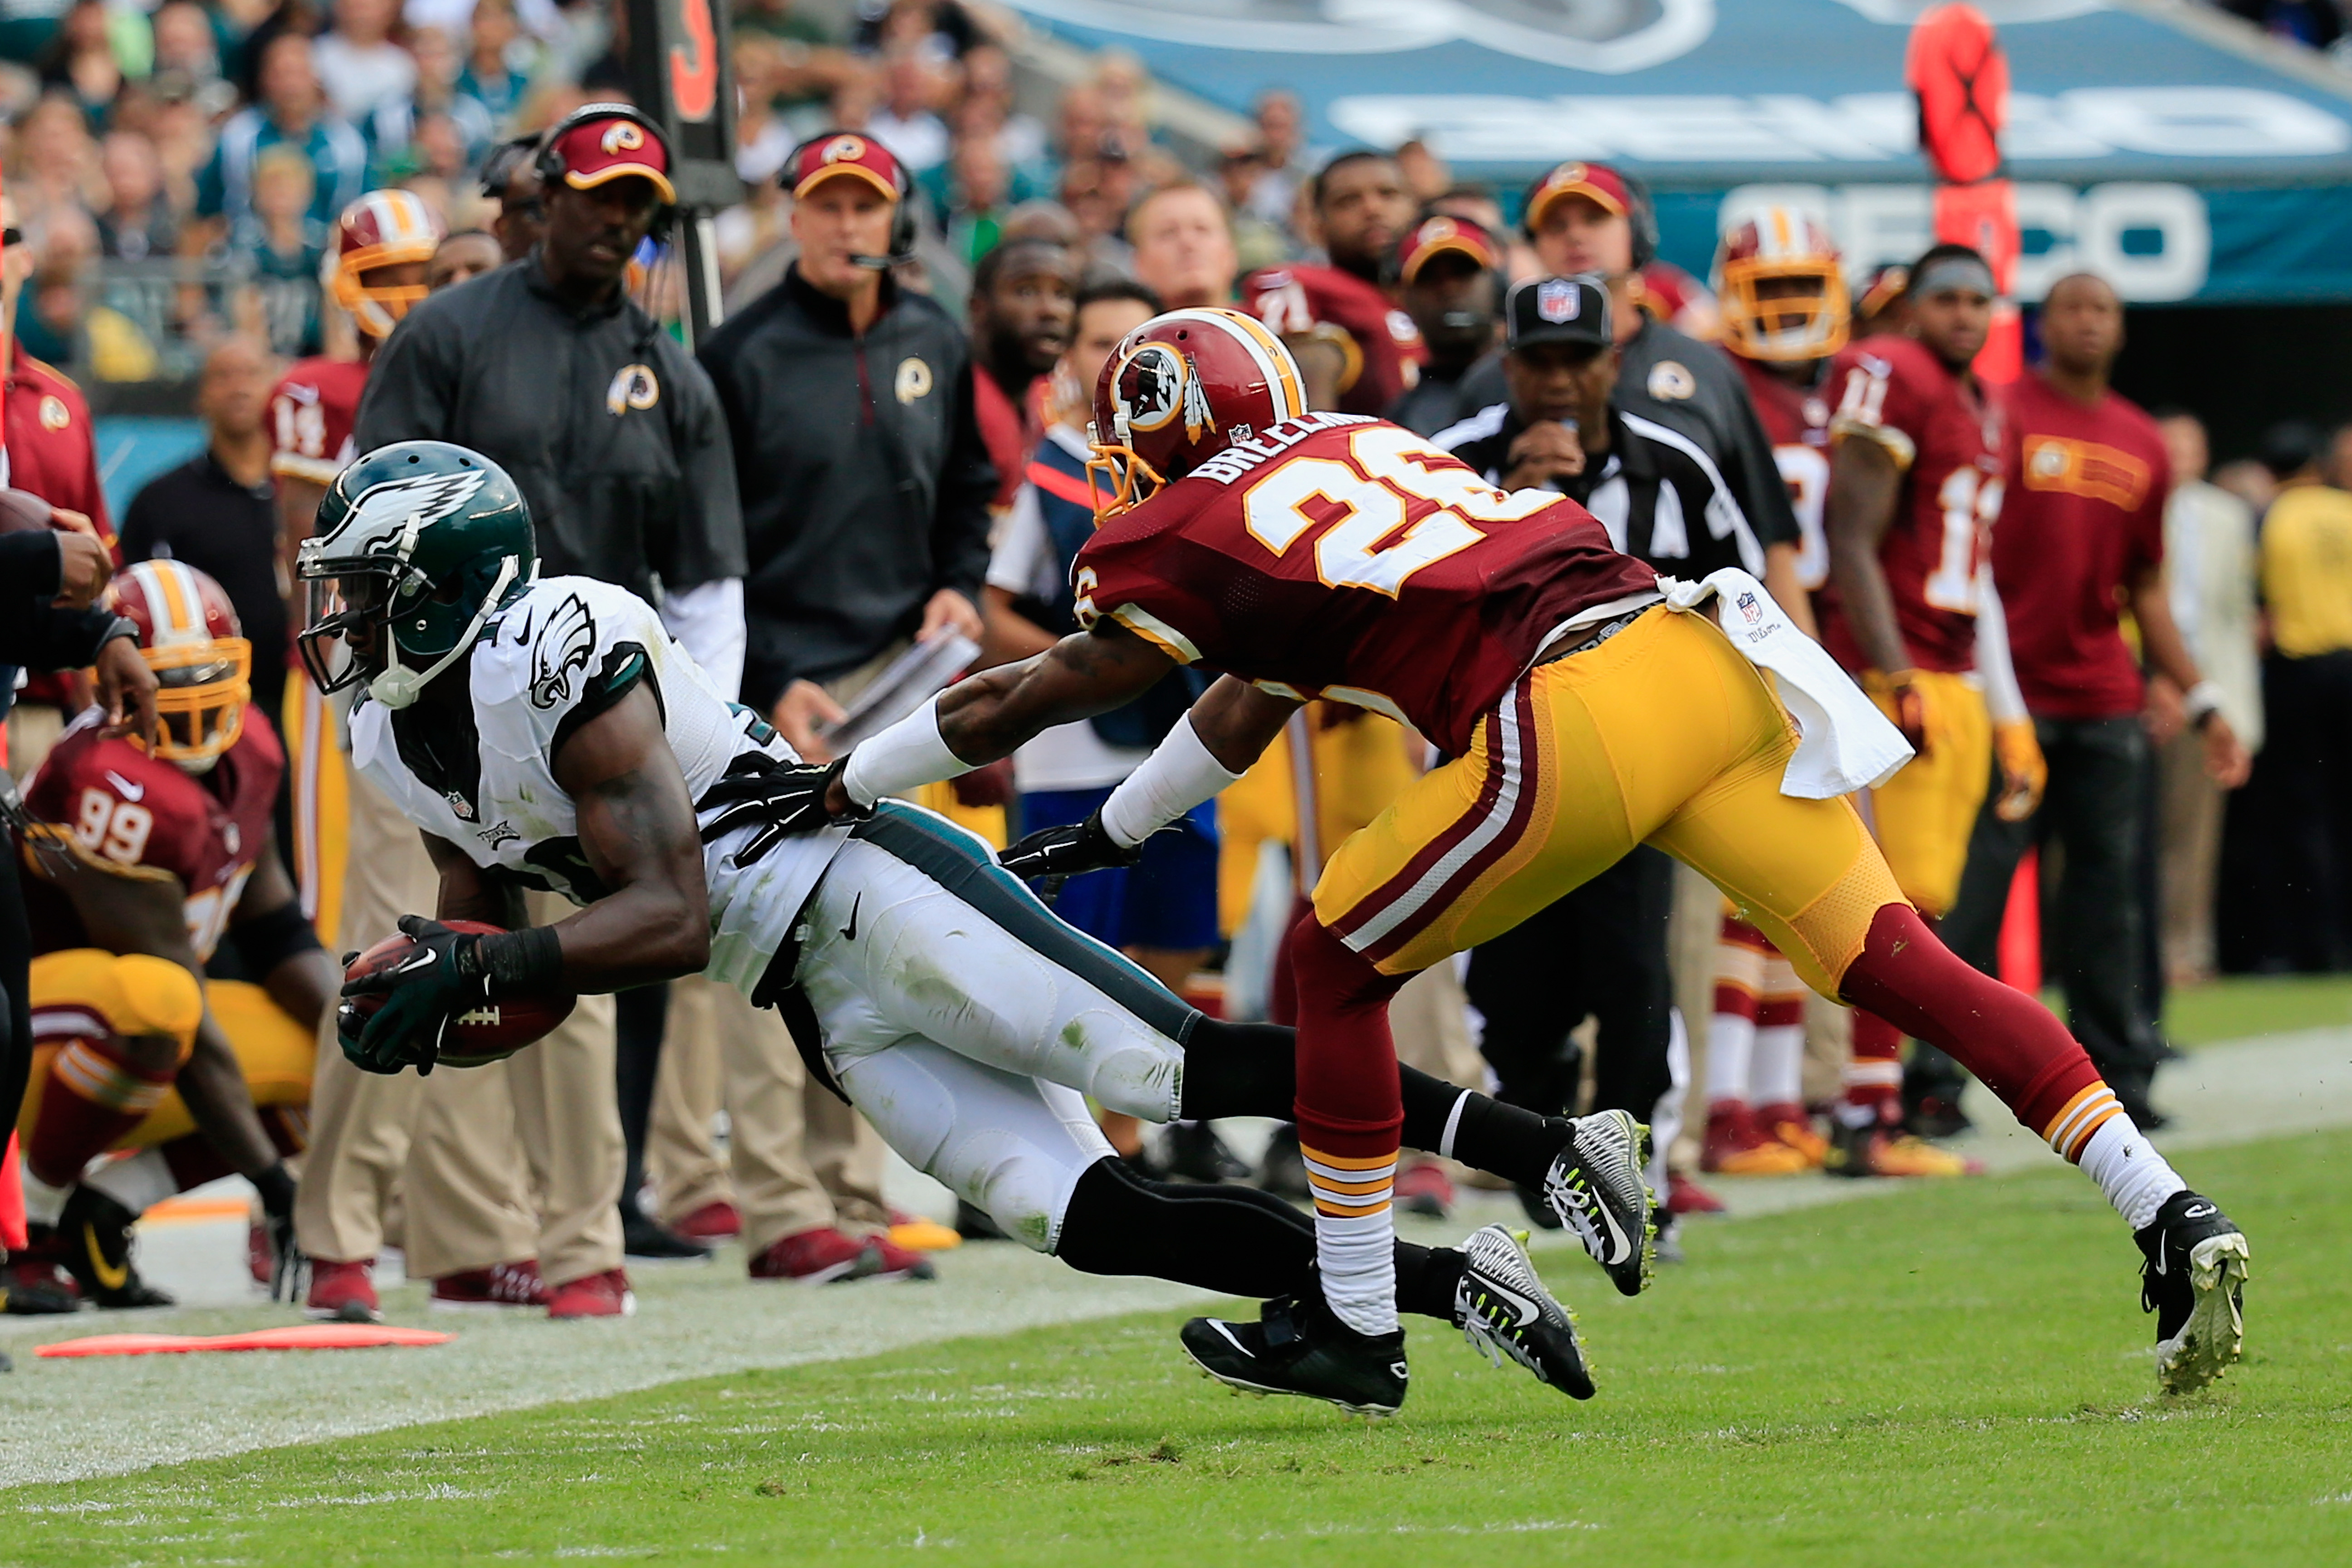 PHILADELPHIA, PA - SEPTEMBER 21:  Jeremy Maclin #18 of the Philadelphia Eagles catches a first-down pass against  Bashaud Breeland #26 of the Washington Redskins in the fourth quarter at Lincoln Financial Field on September 21, 2014 in Philadelphia, Pennsylvania.  (Photo by Rob Carr/Getty Images)